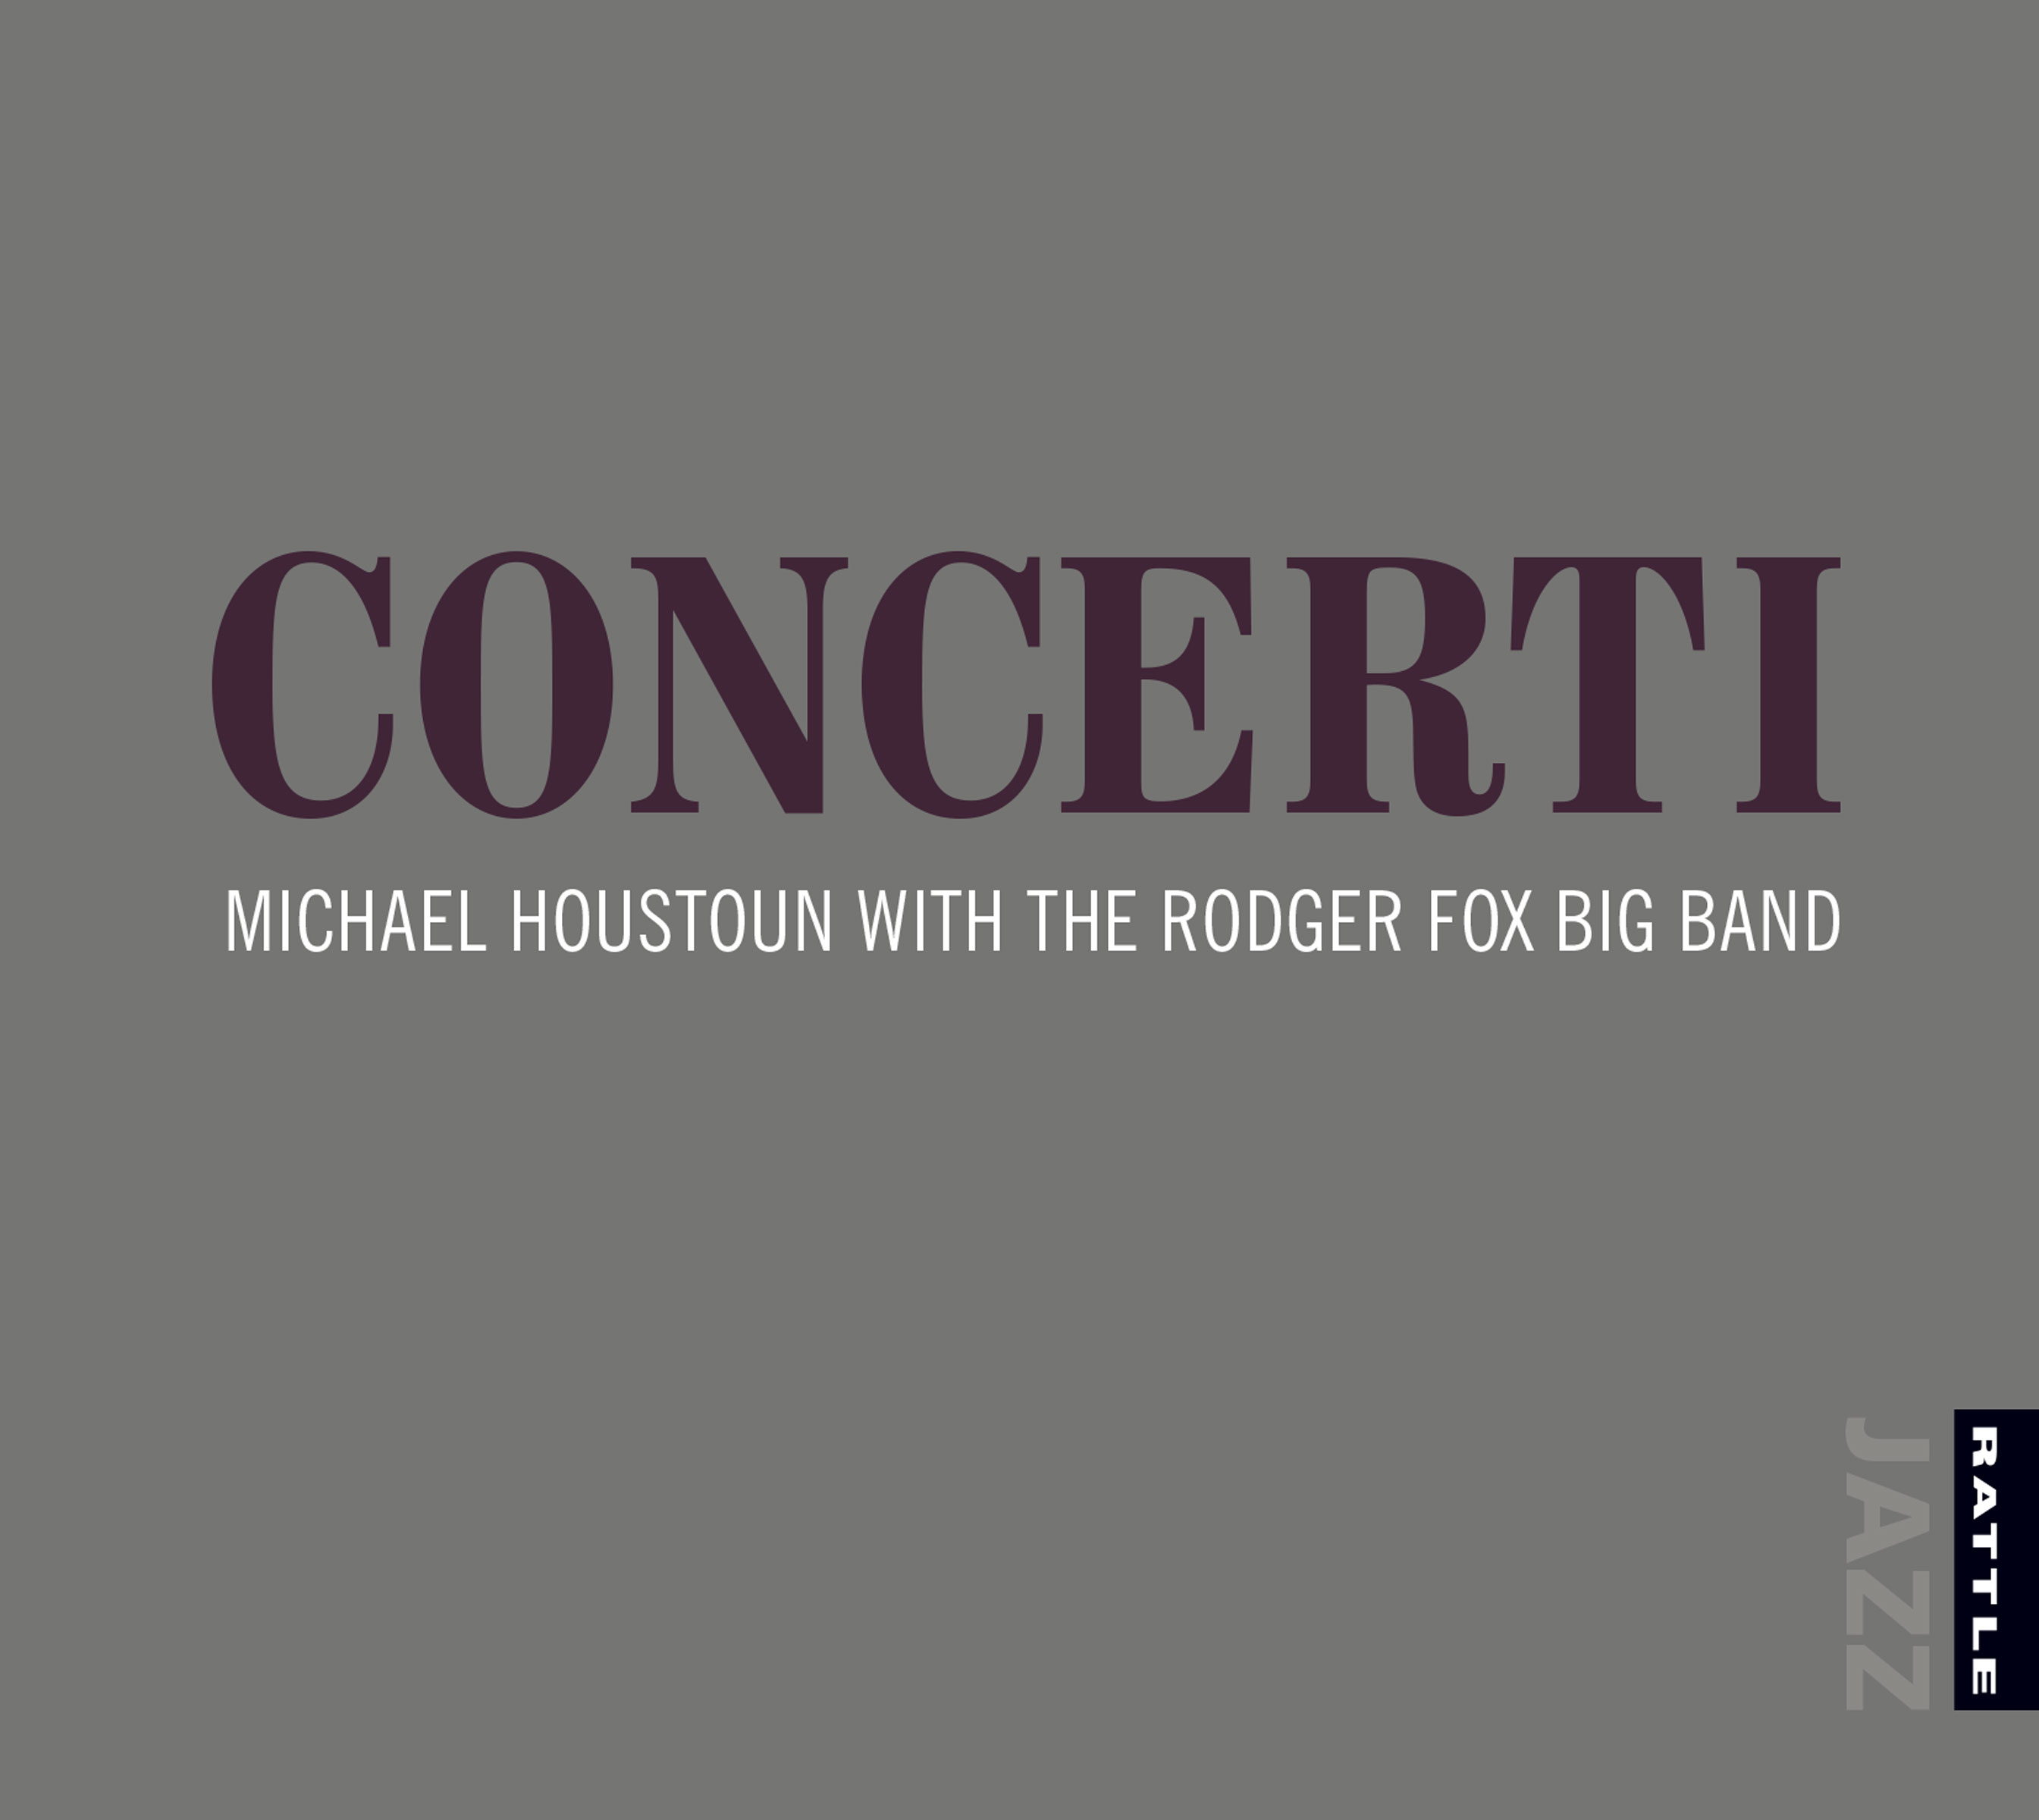 Concerti | Michael Houstoun and the Rodger Fox Big Band - downloadable MP3 ALBUM